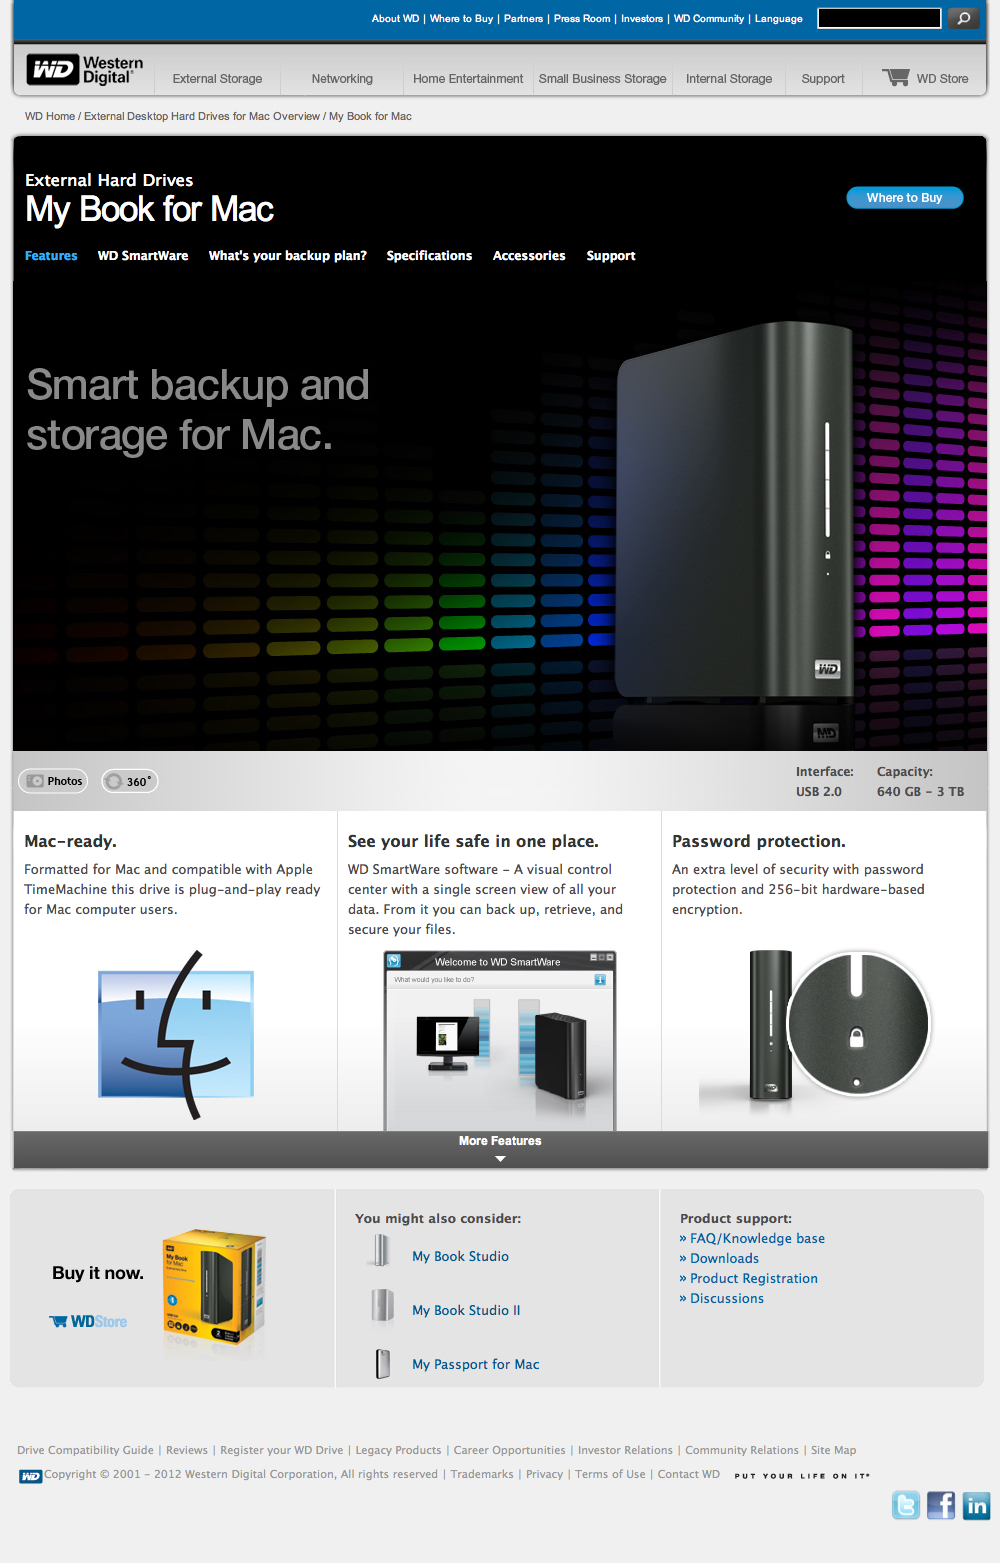 My Book for Mac (20120806).jpg